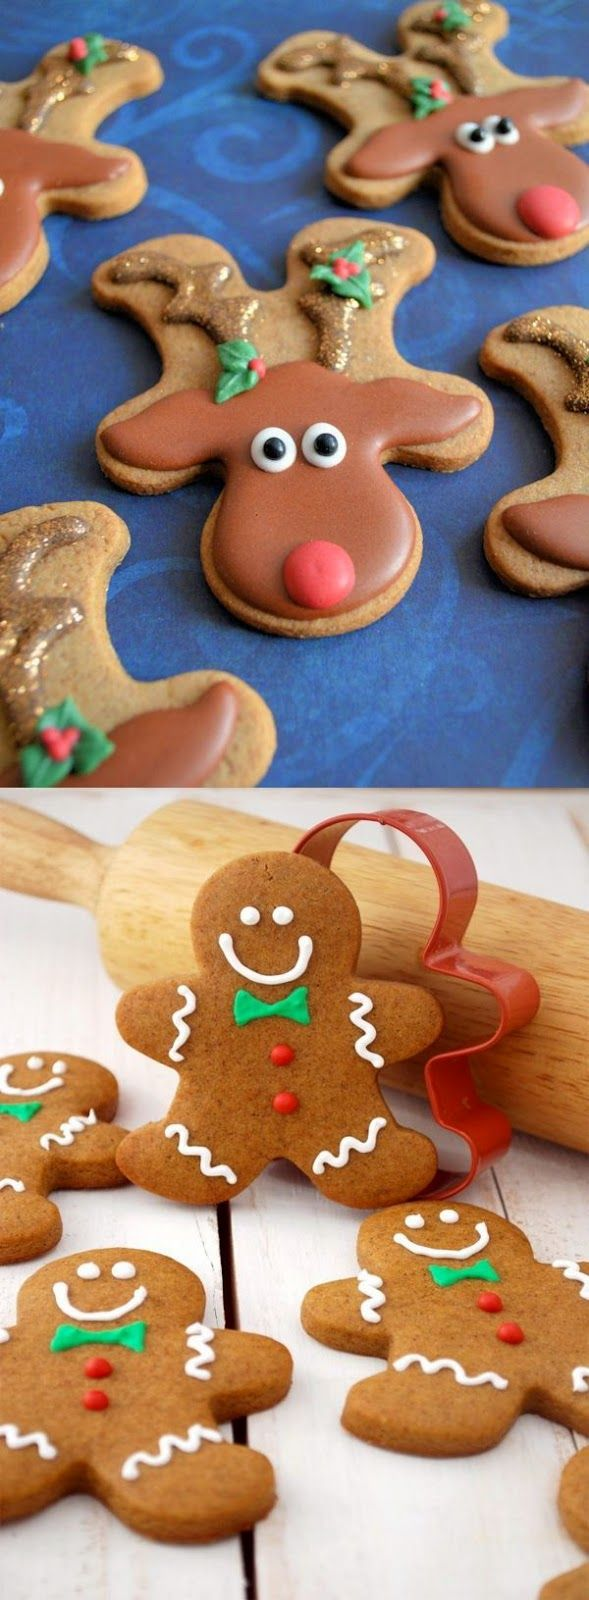 ginger bread cookies recipe christmas holiday baking better baking bible blog, reindeer, wreaths, gingerbread houses